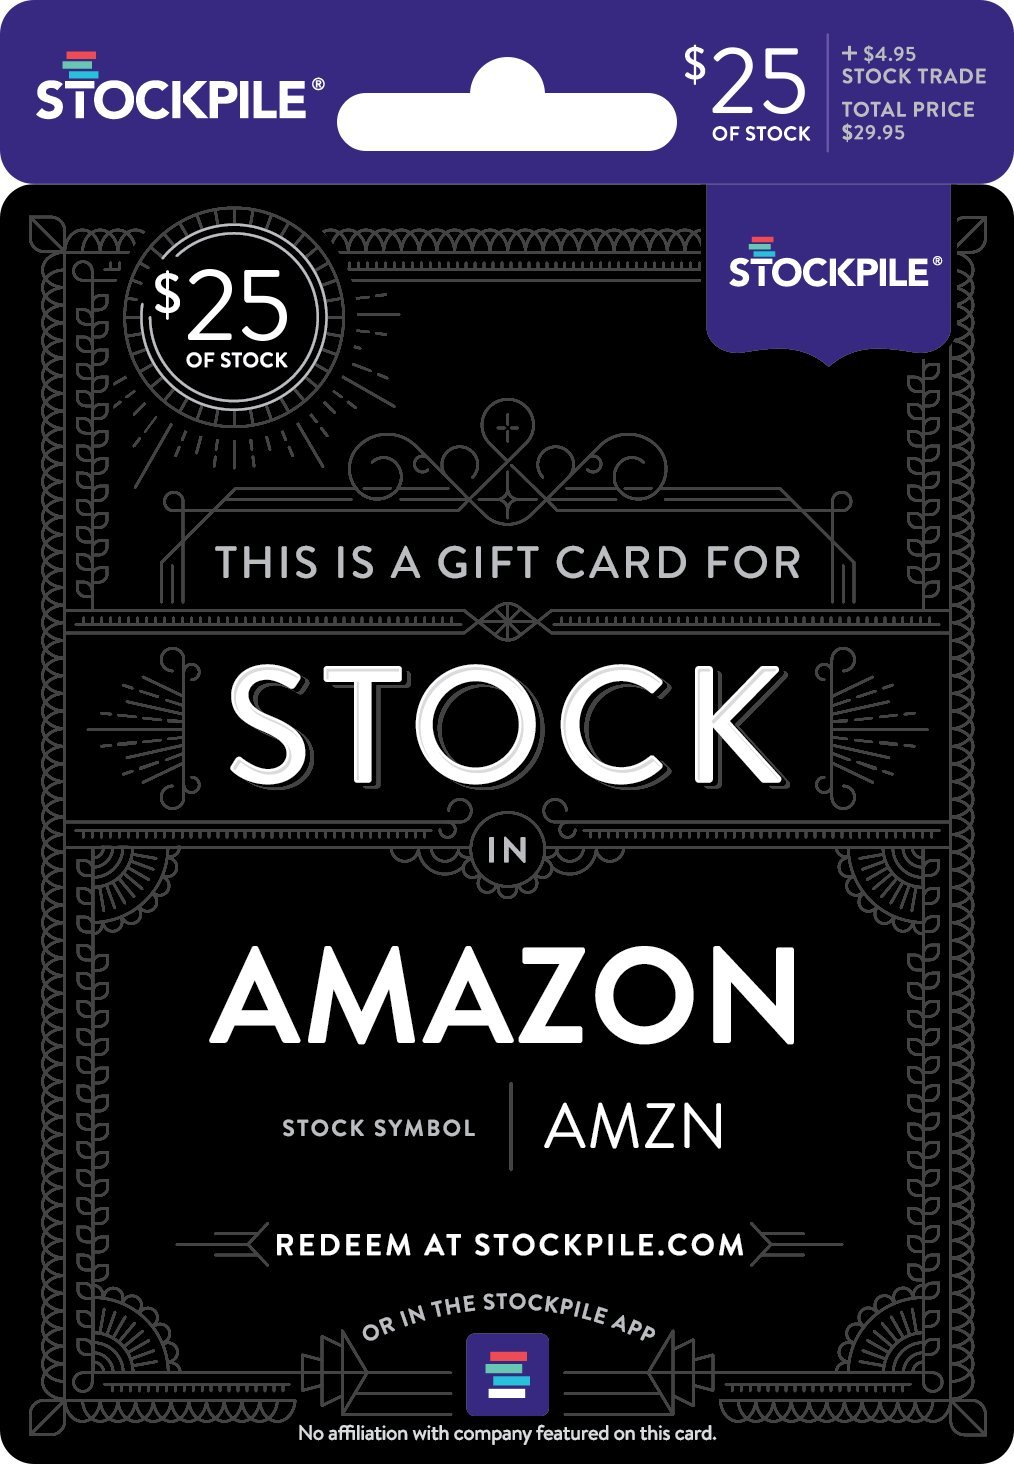 Amazon Gift Card For Amazon Stock Everything Else